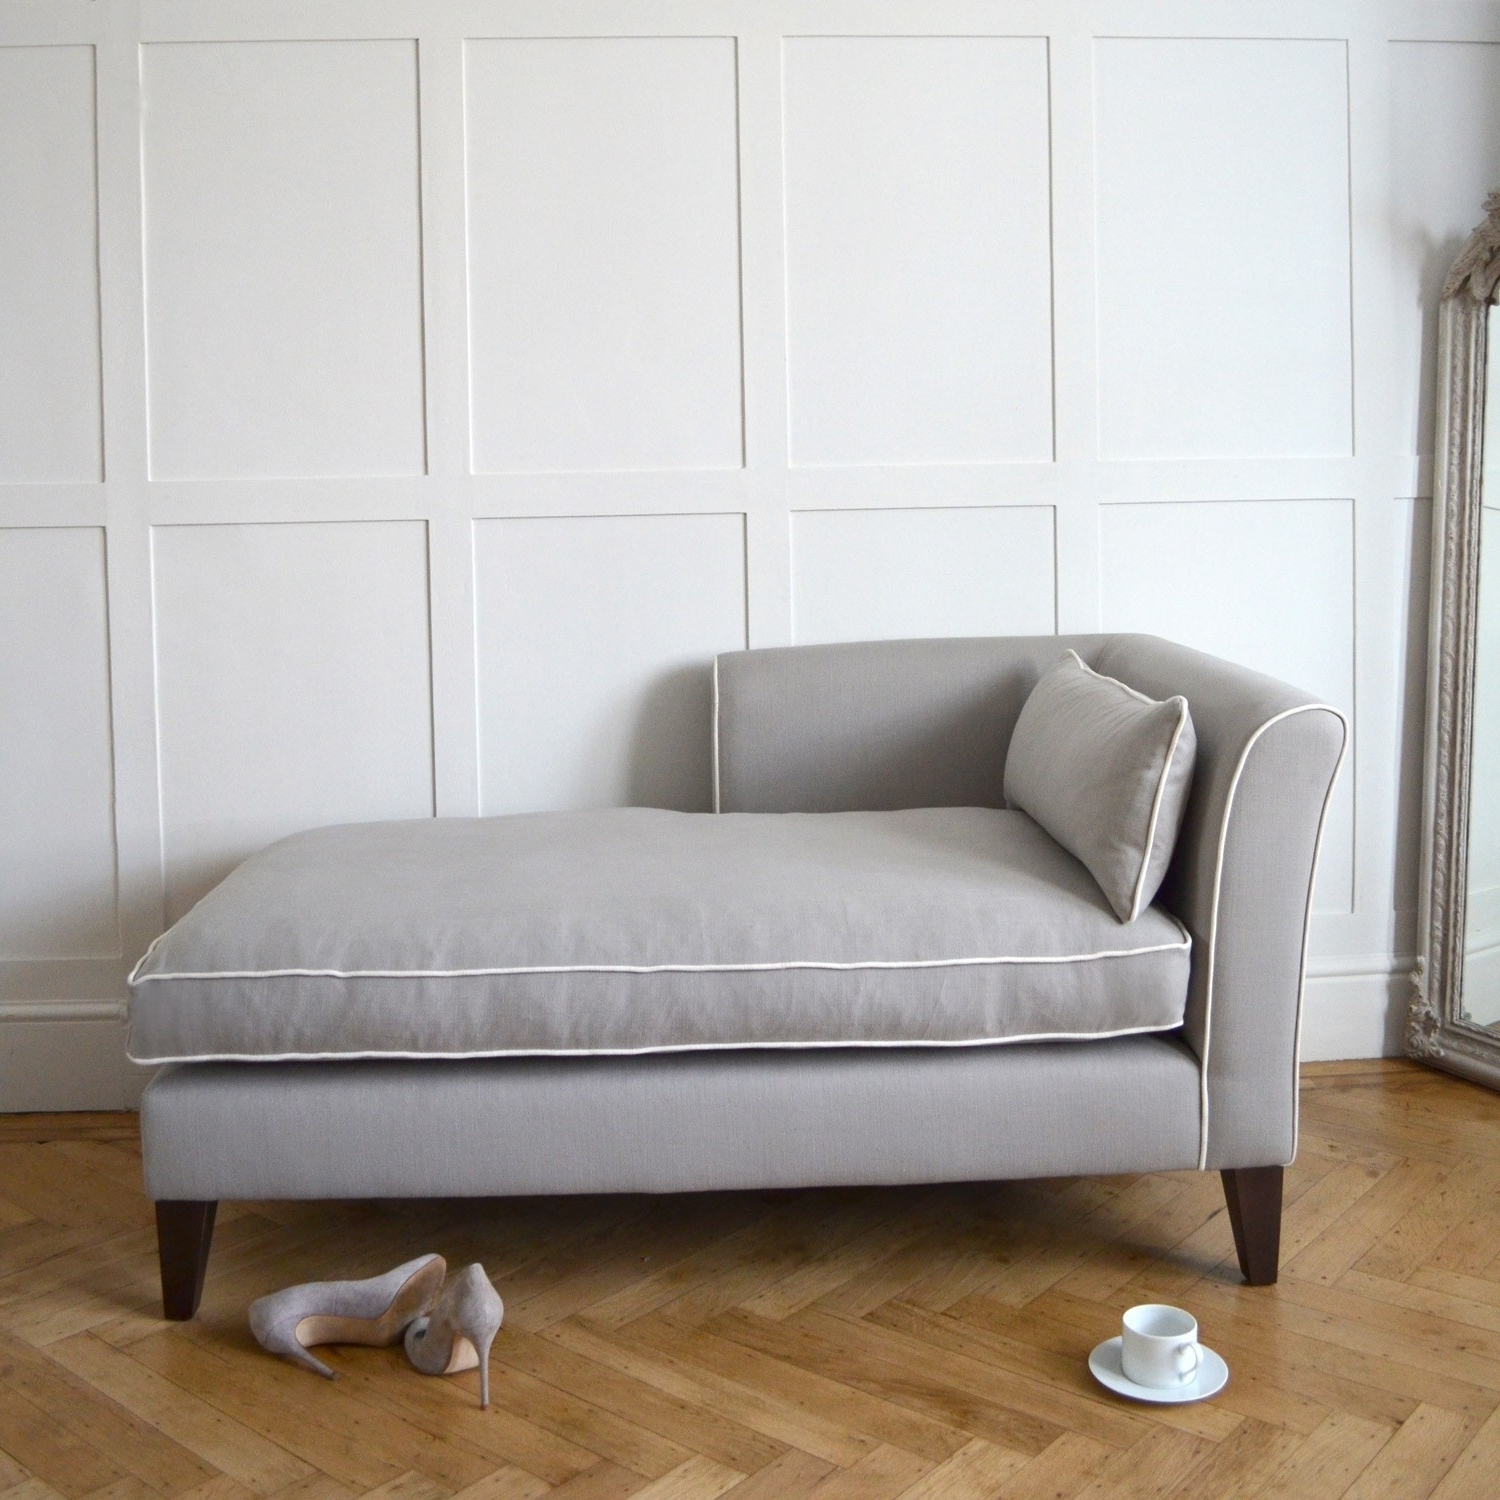 Modern Chaise Longues Pertaining To Latest Heathcote Chaise Longue – Smooth Modern Shape – Choose Fabric (View 7 of 15)